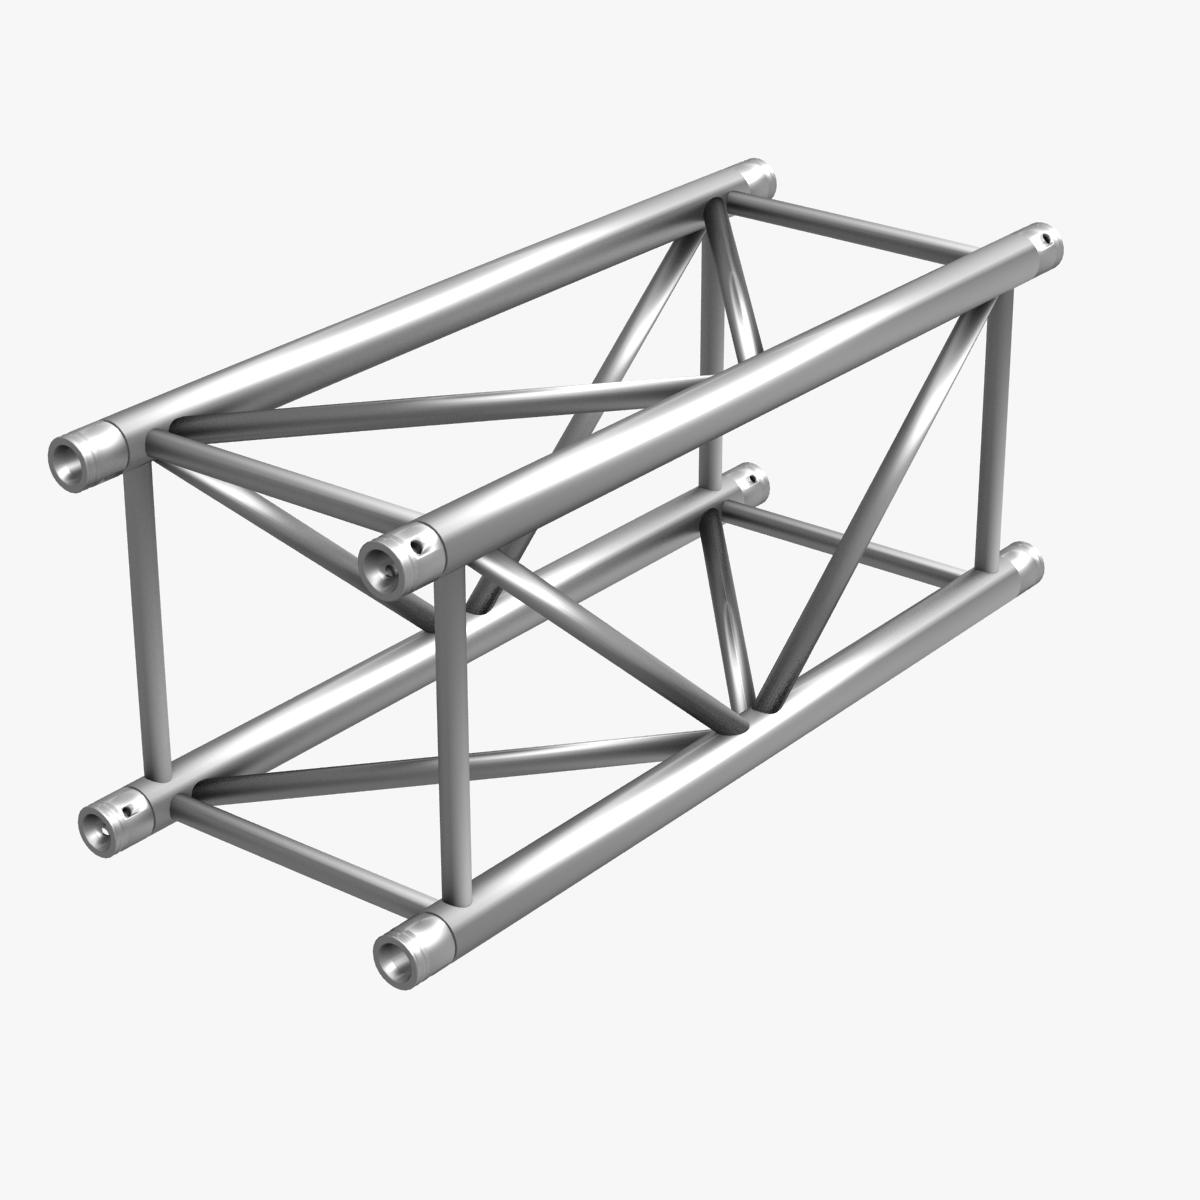 big square truss (collection 10 modular pieces) 3d model 3ds dxf fbx c4d dae  268546